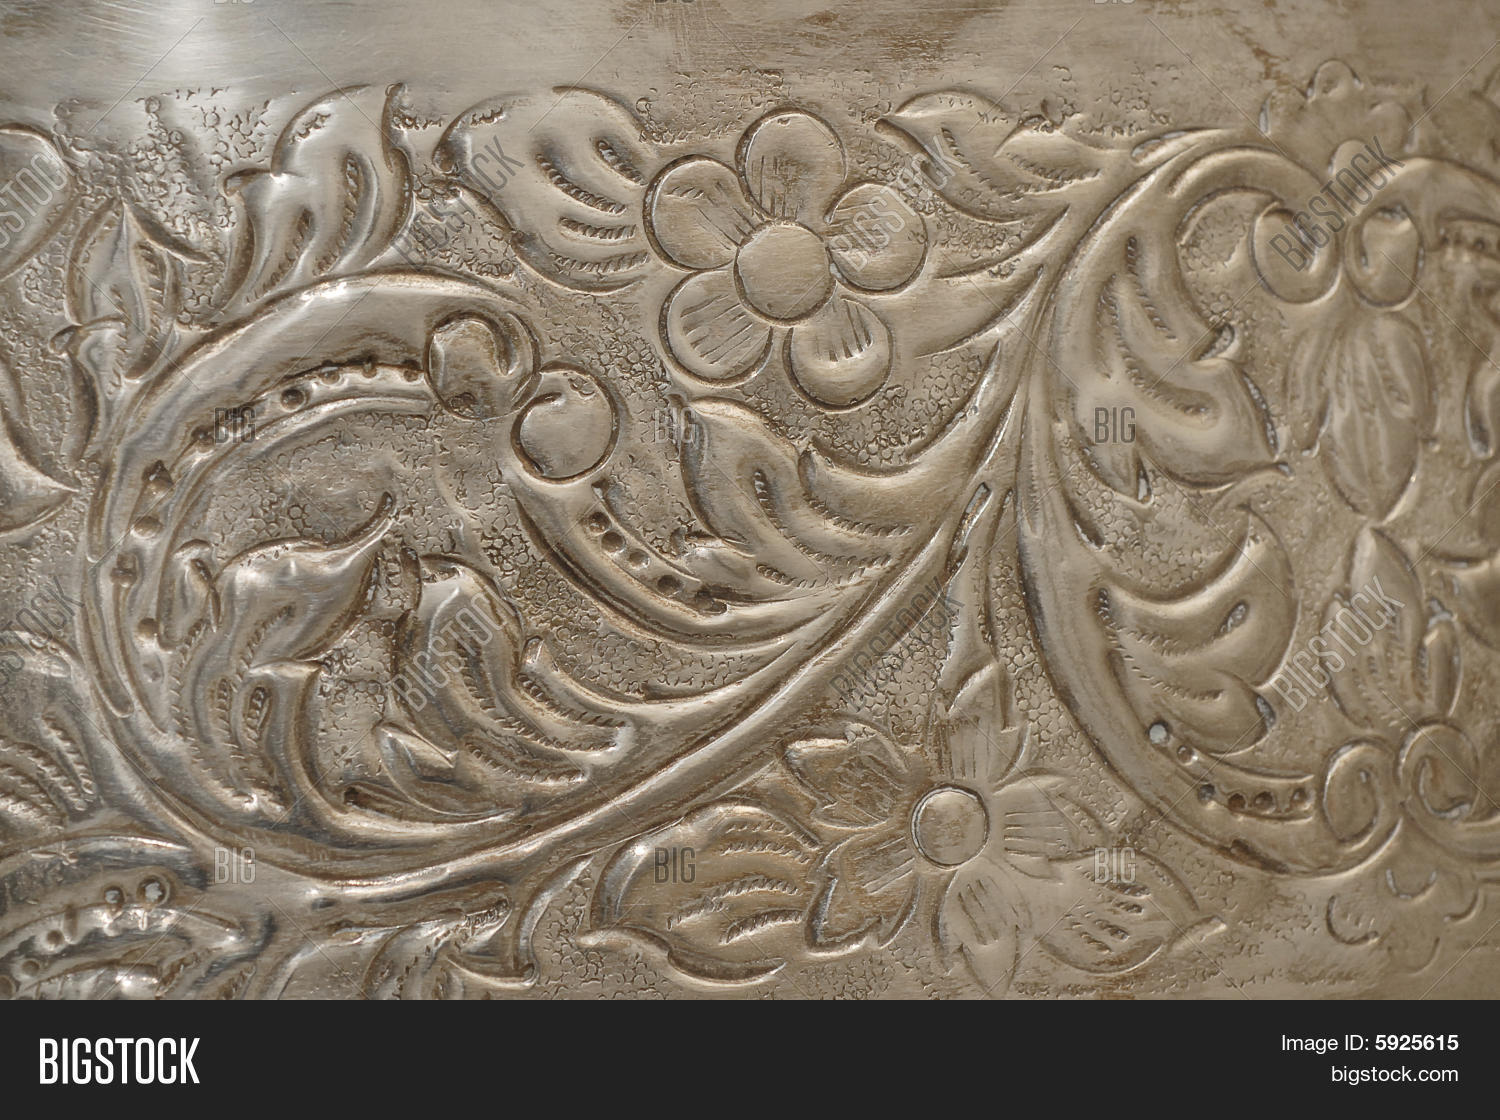 Metal relief carving on silver for background texture